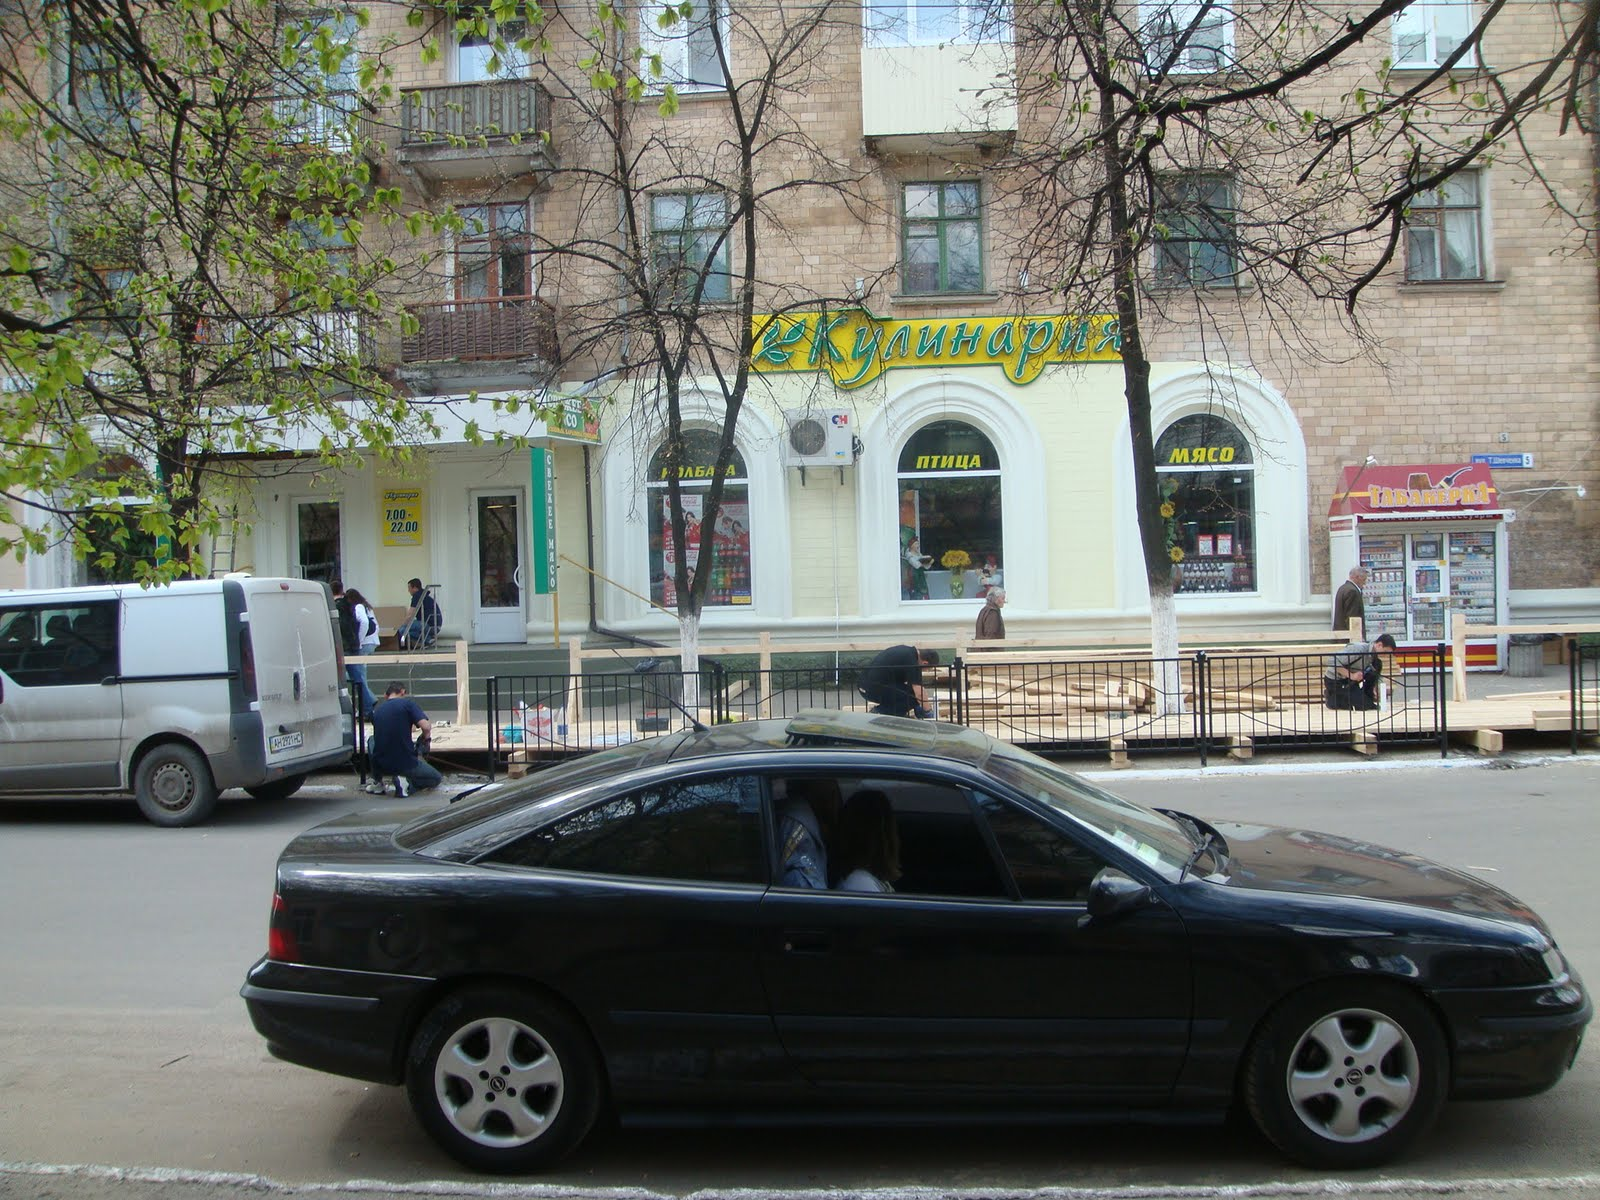 Taxi Berdyansk: a selection of sites